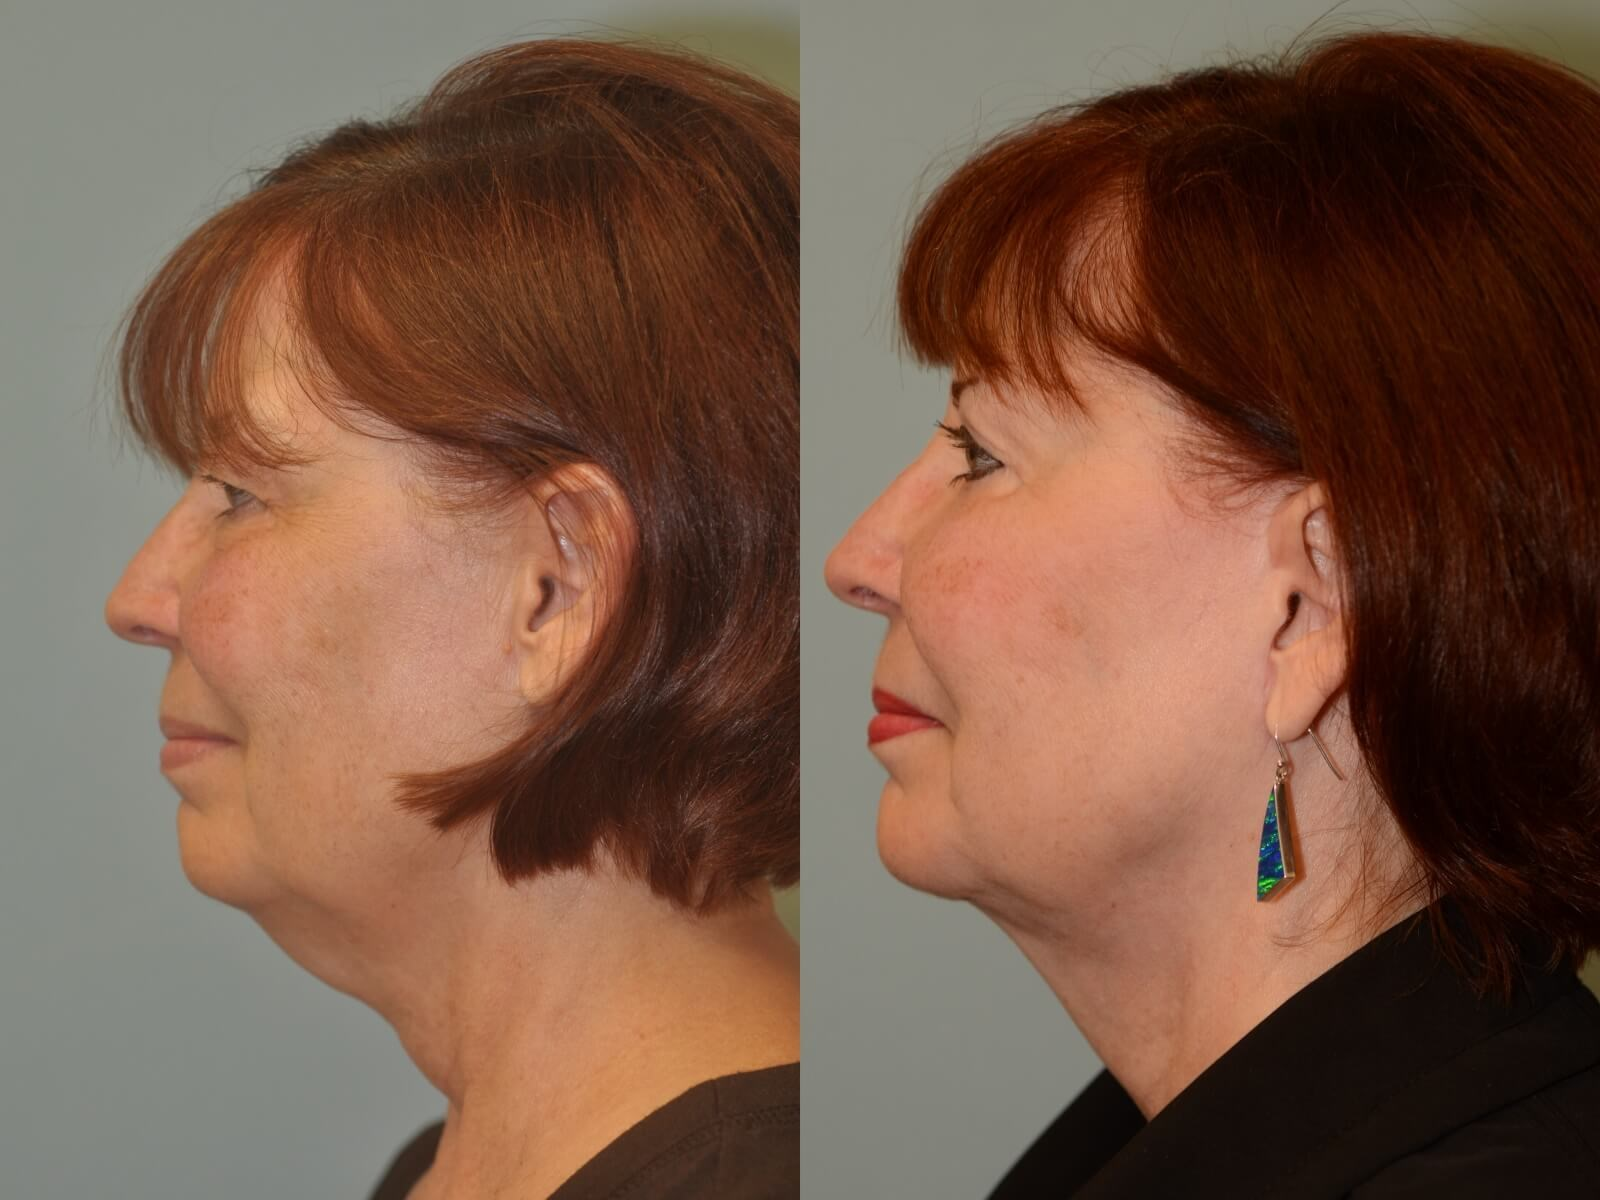 A slimmer side profile Before and After